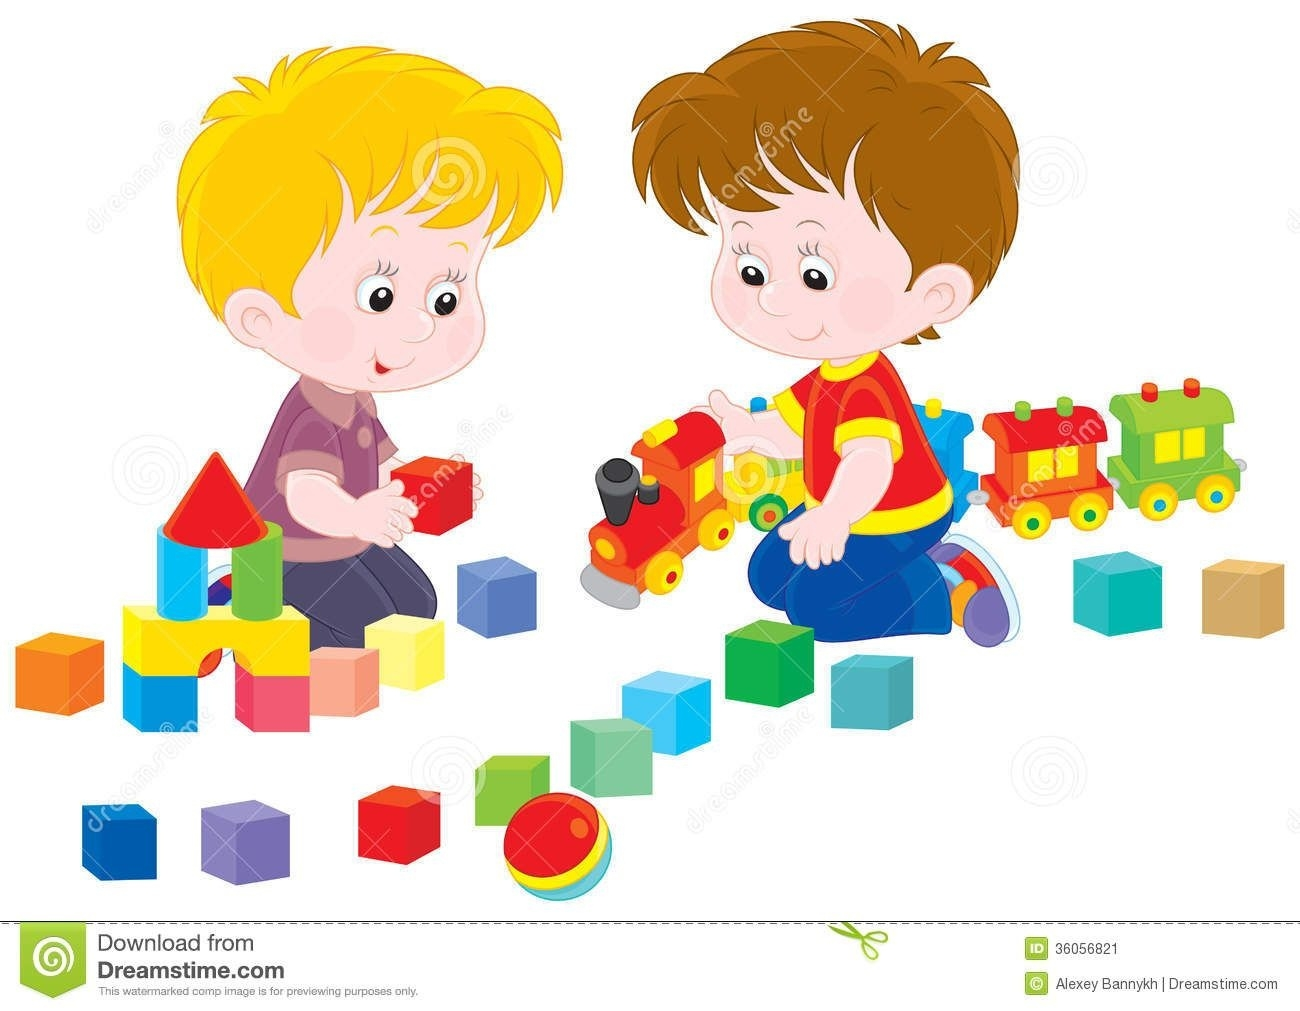 Share toys clipart graphic transparent library Children-Playing-With-Toys-Clip-Art-1241384 (1300×1011 for ... graphic transparent library